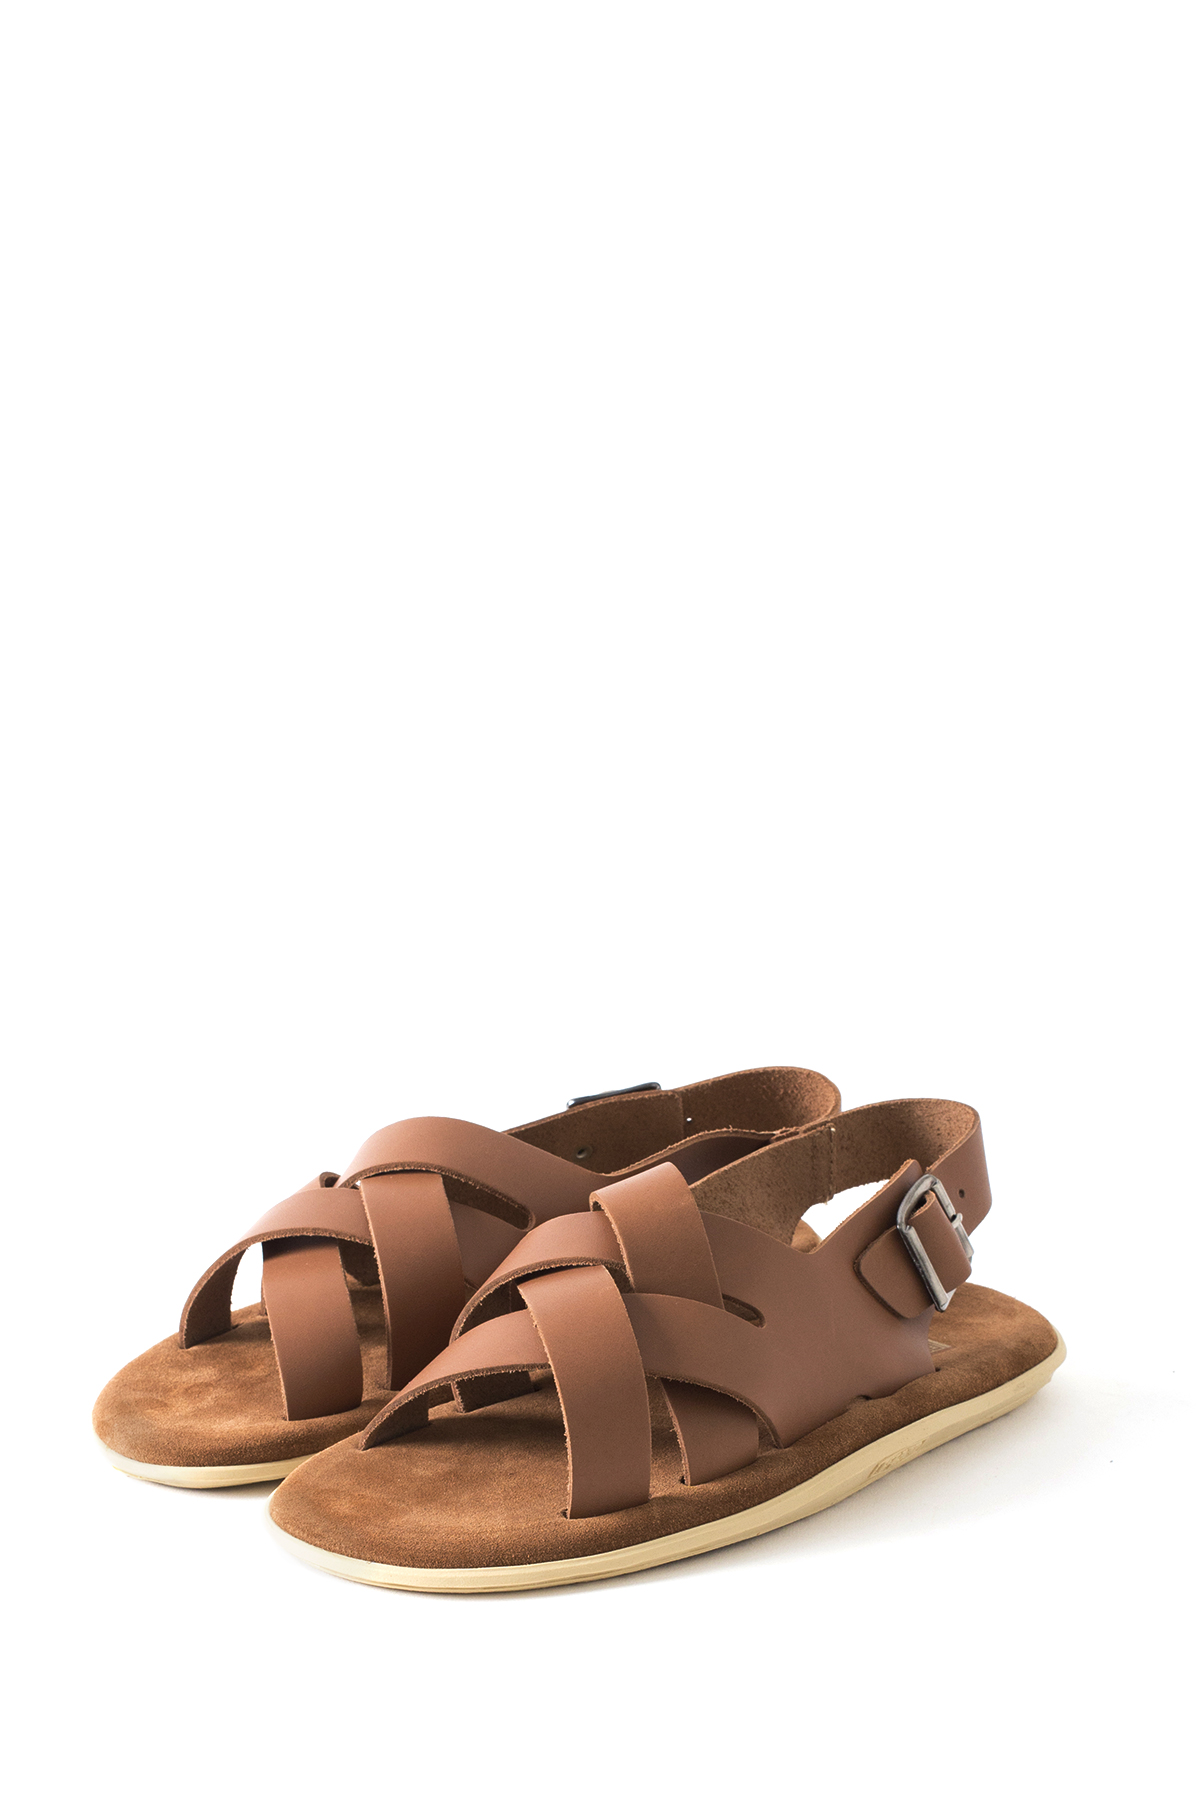 ISLAND SLIPPER : PT408 (Leather Suede / Cognac)